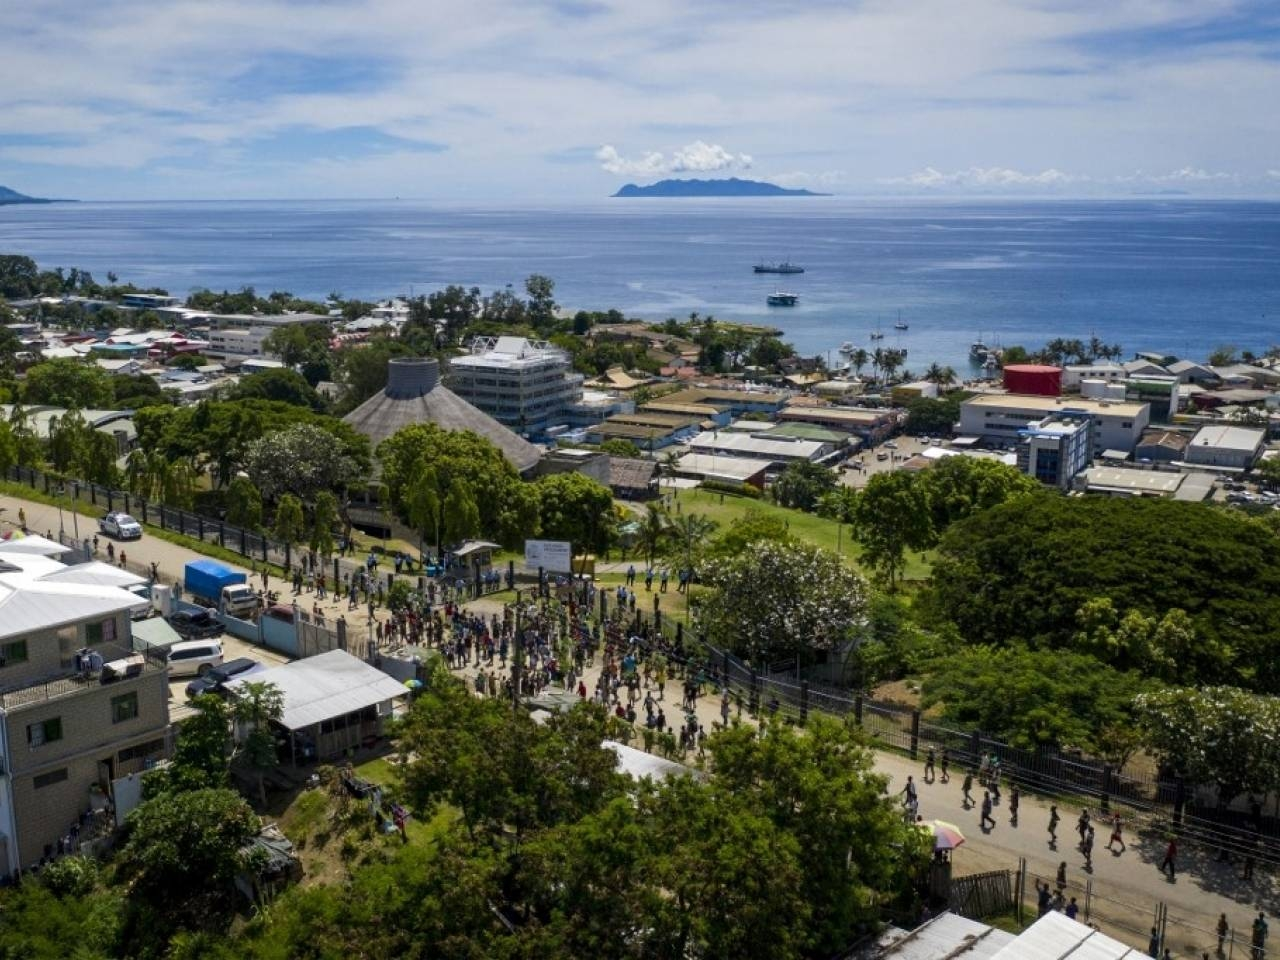 Police were deployed in Honiara on Tuesday as Taiwan closes its embassy in the country. -AFP